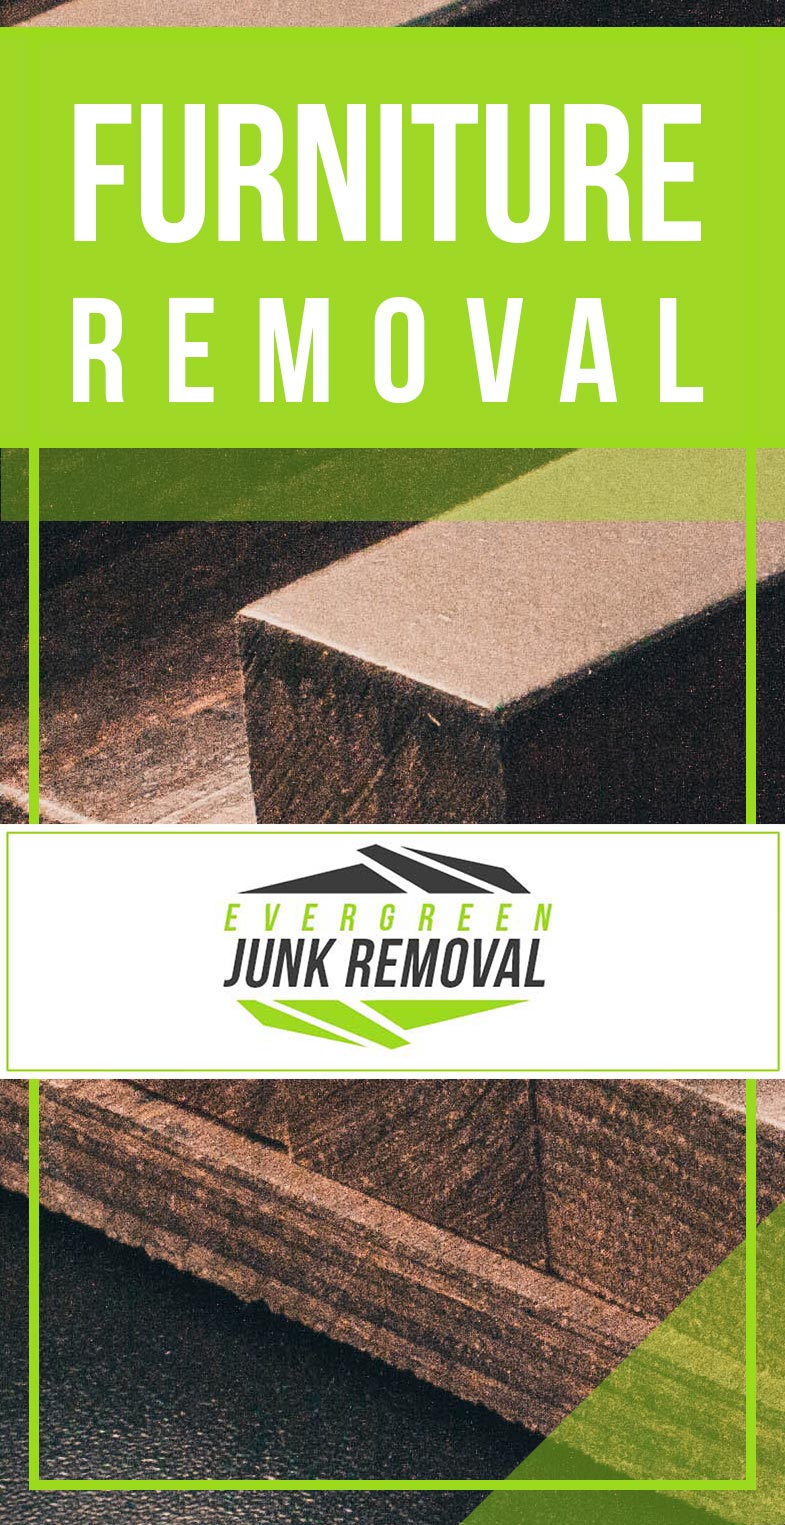 Omaha Furniture Removal